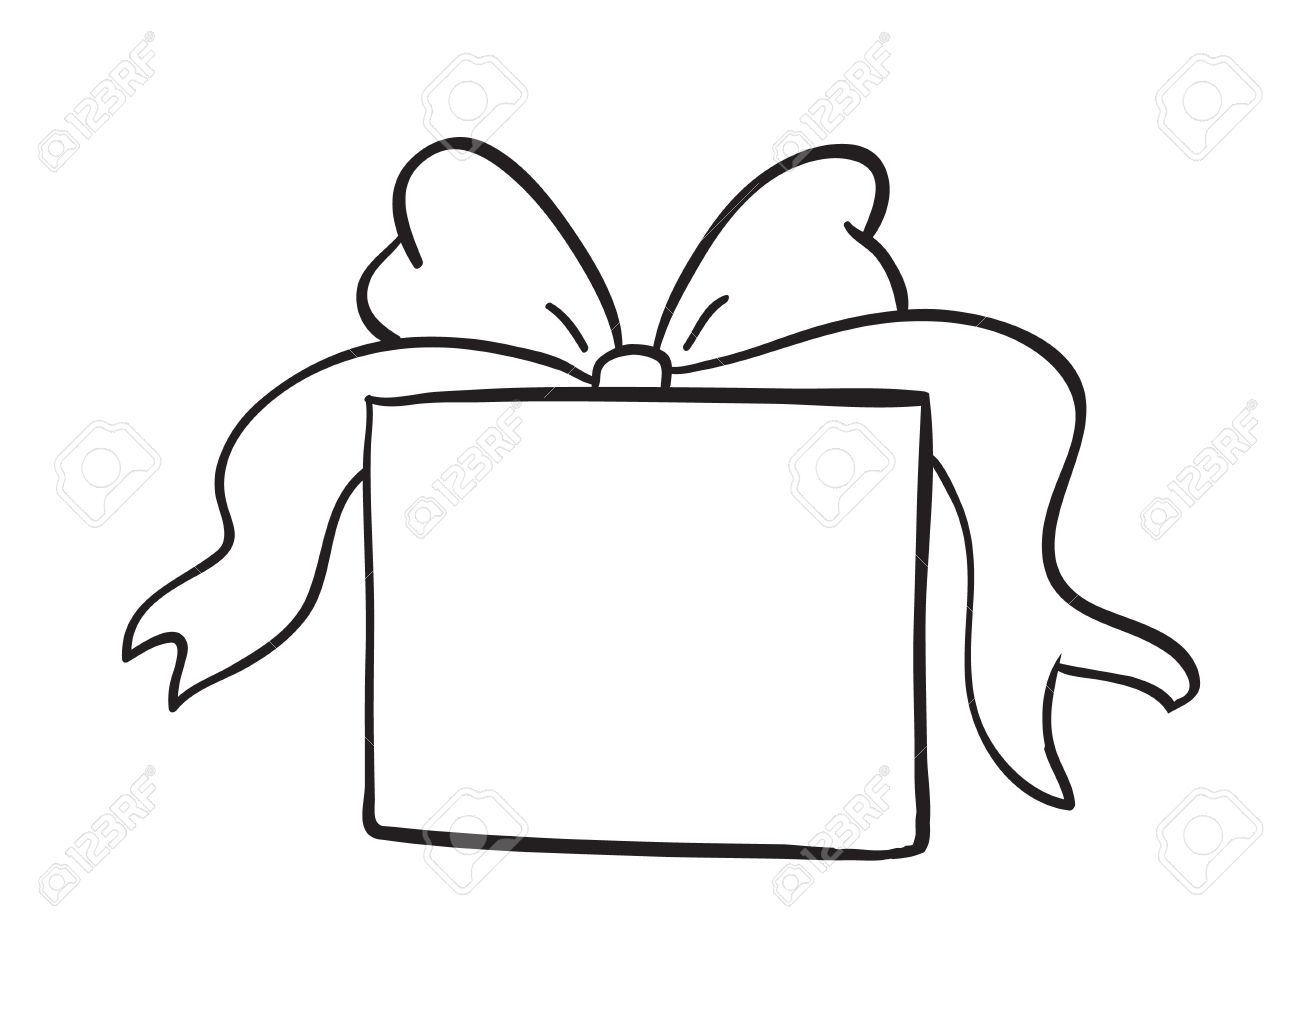 detailed sketch of gift box on a white background royalty free rh 123rf com free gift box clipart gift box clipart images